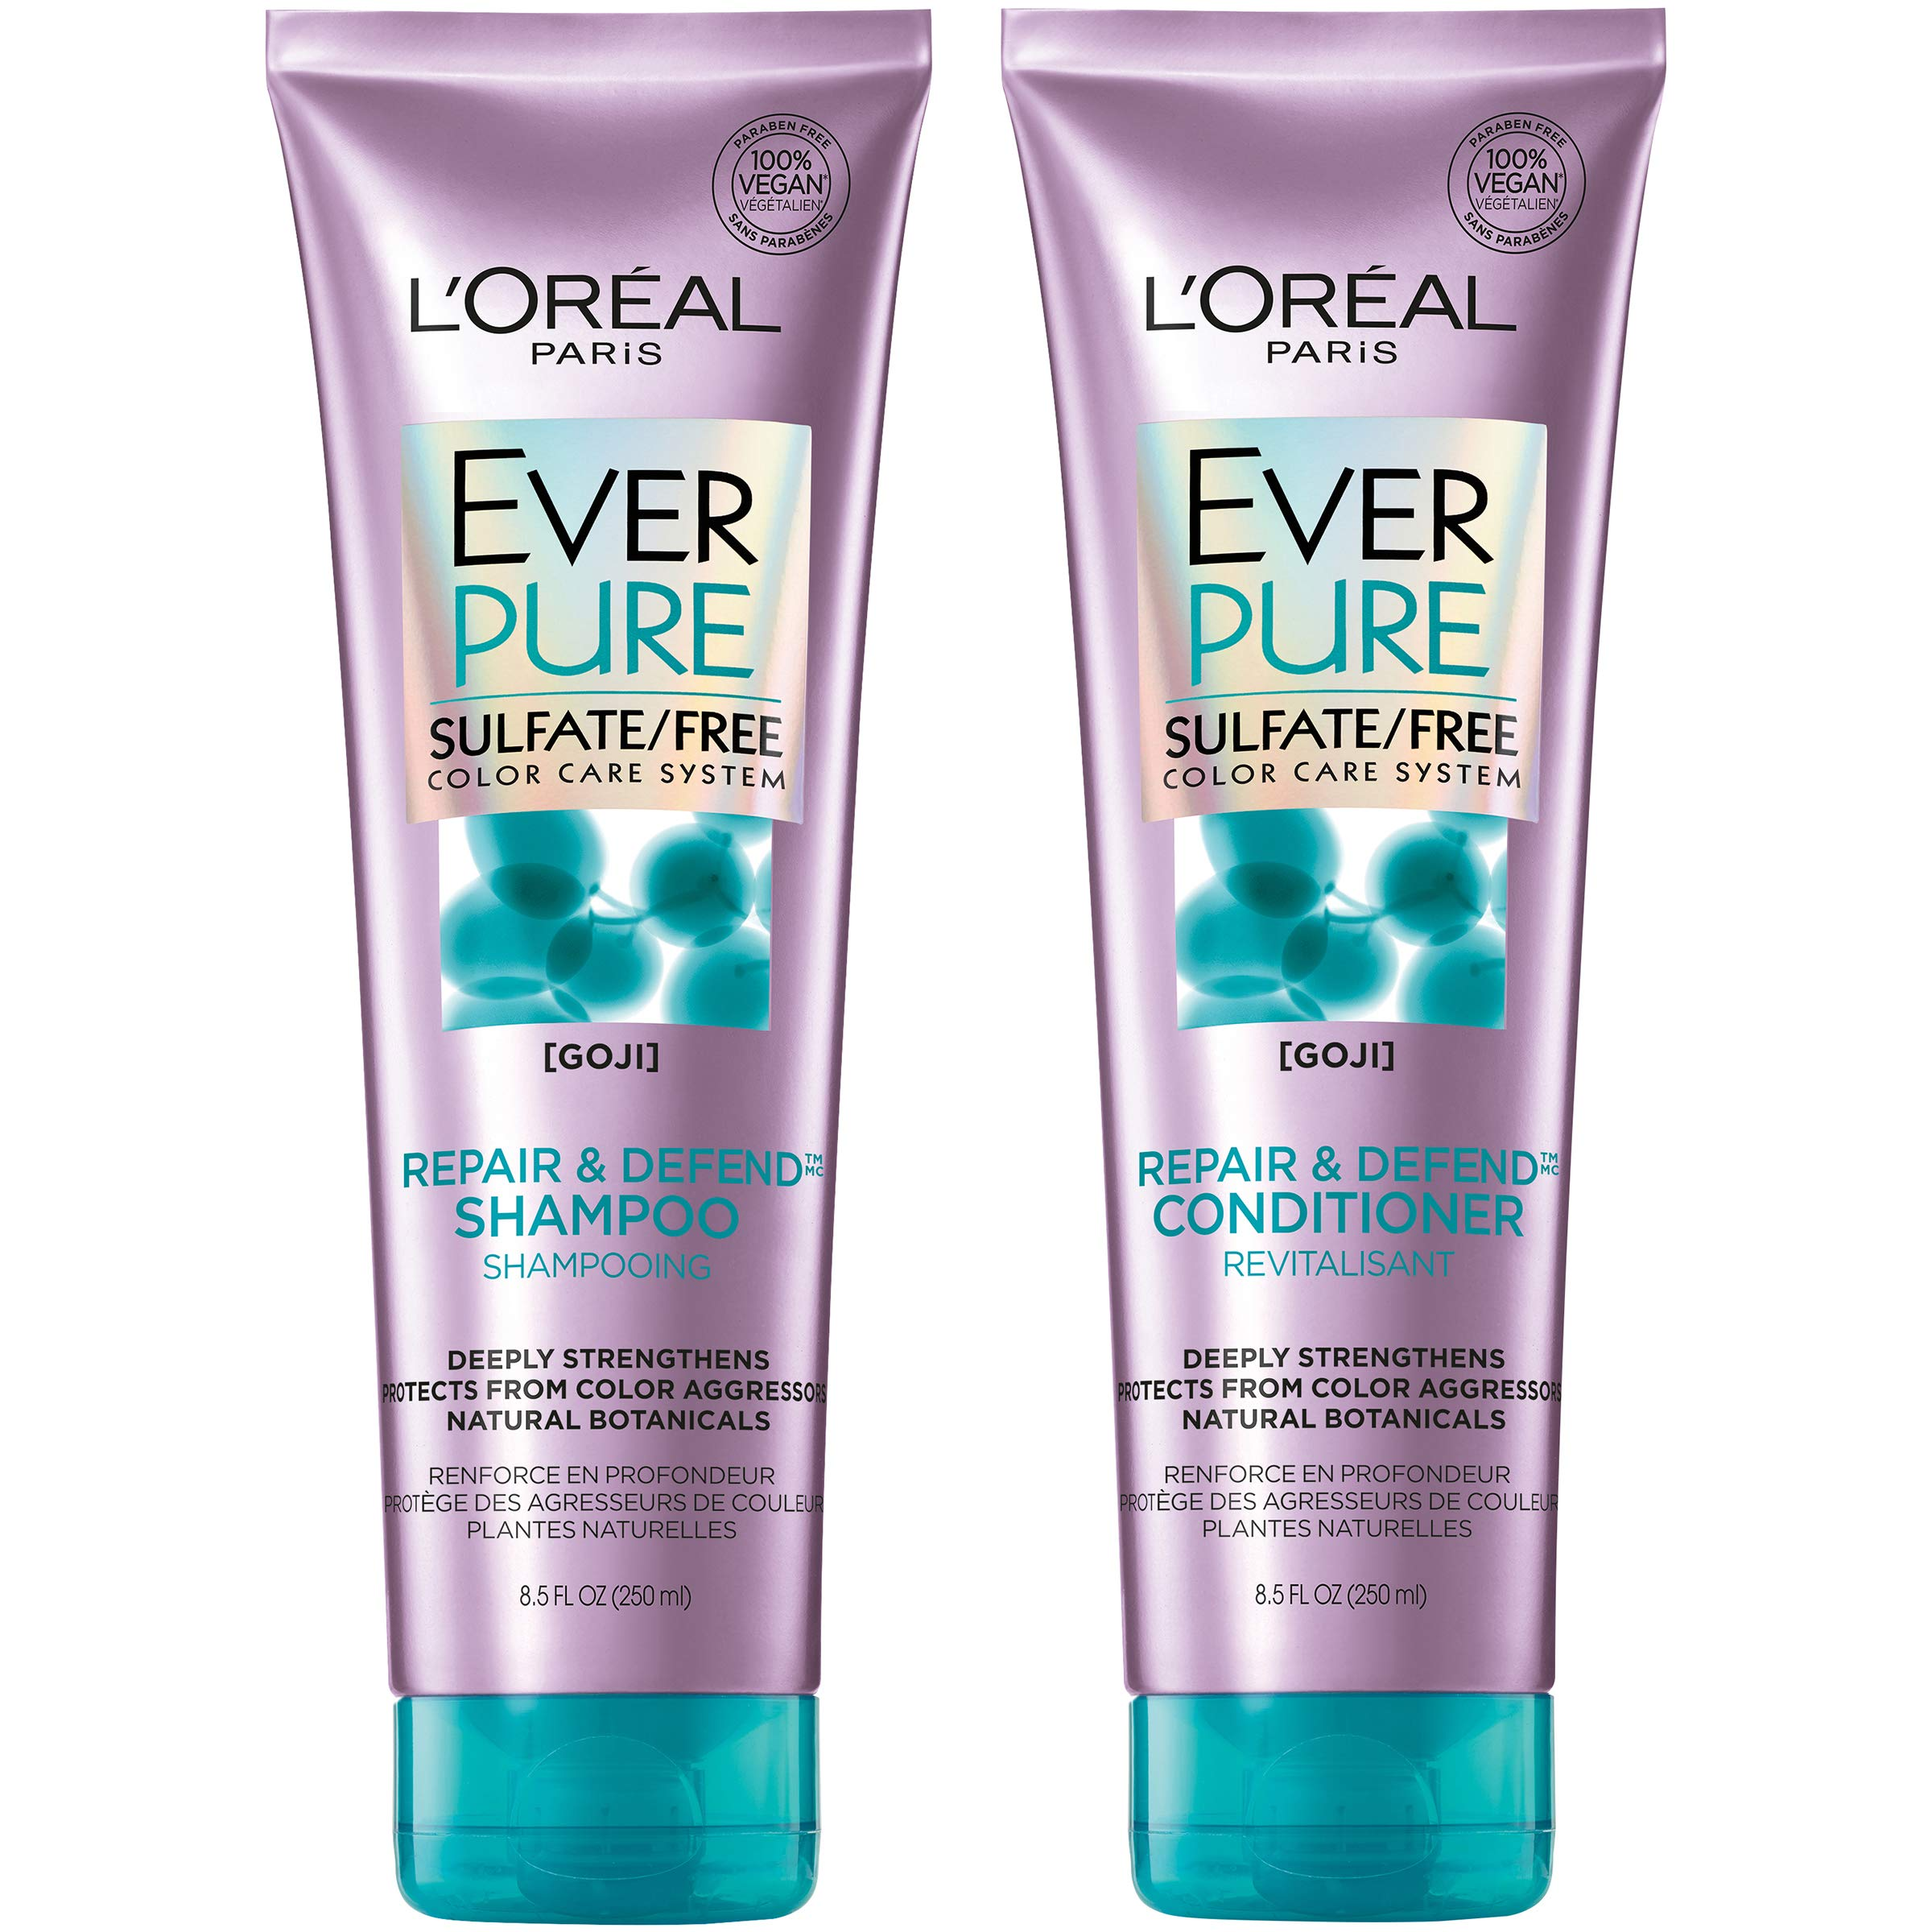 L'Oréal Paris Hair Care EverPure Repair & Defend Sulfate Free Shampoo & Conditioner Kit for Color-Treated Hair, Strengthens + Repairs, For Damaged Hair with Goji (8.5 Fl. Oz each)